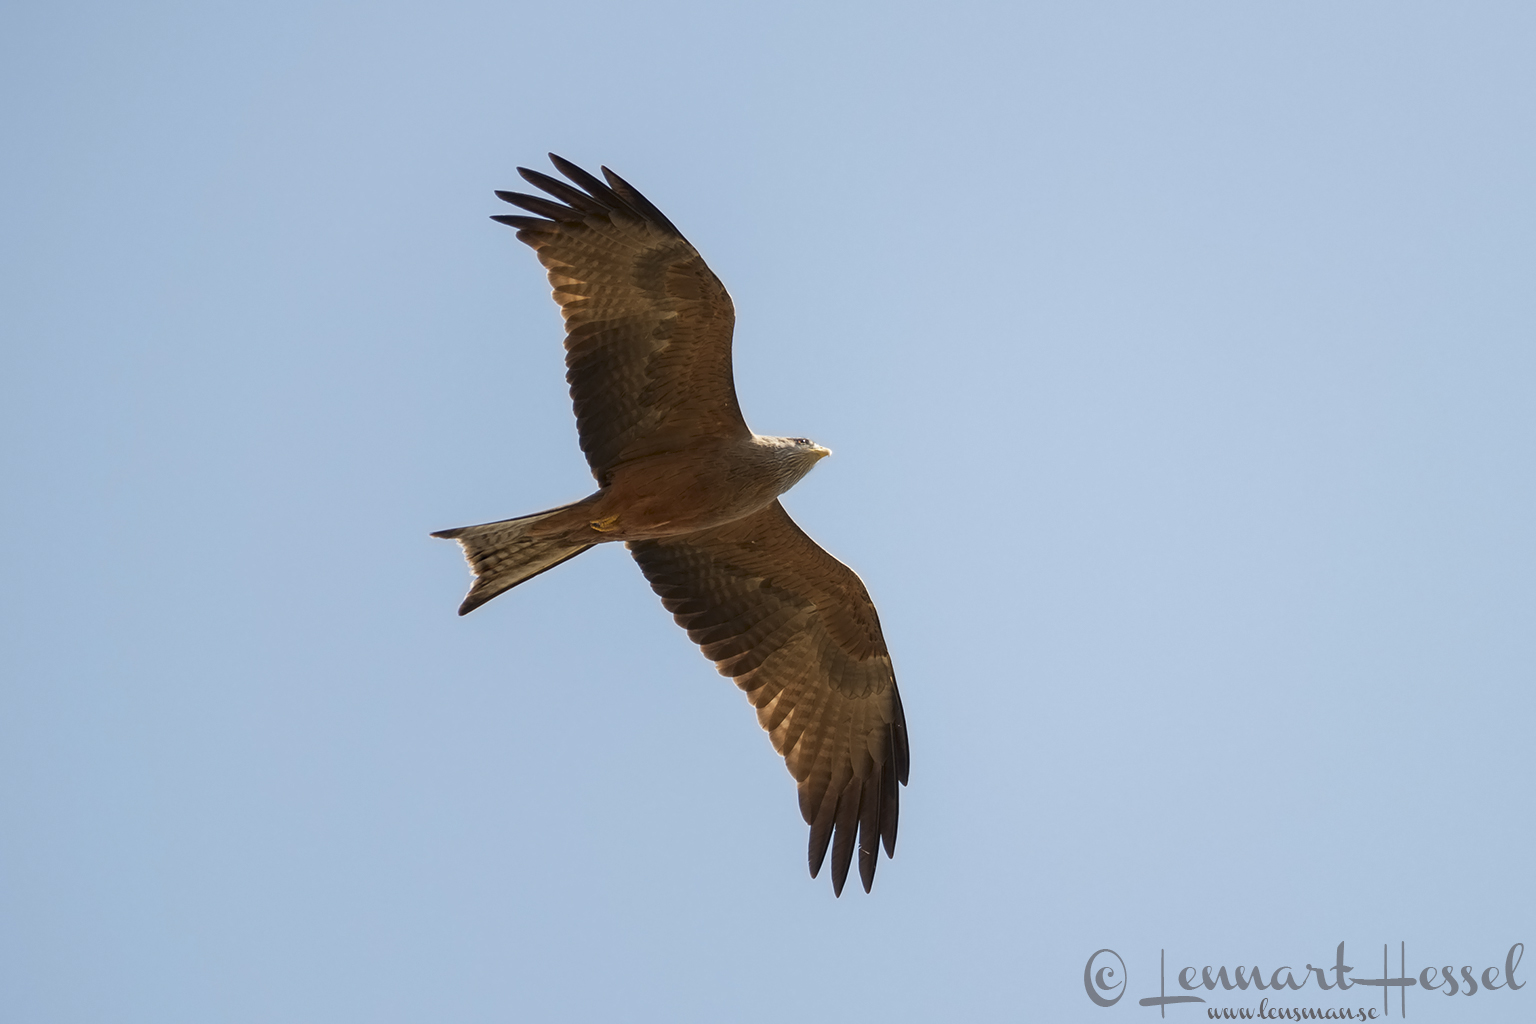 Yellow-billed Kite in Moremi Game Reserve, Botswana